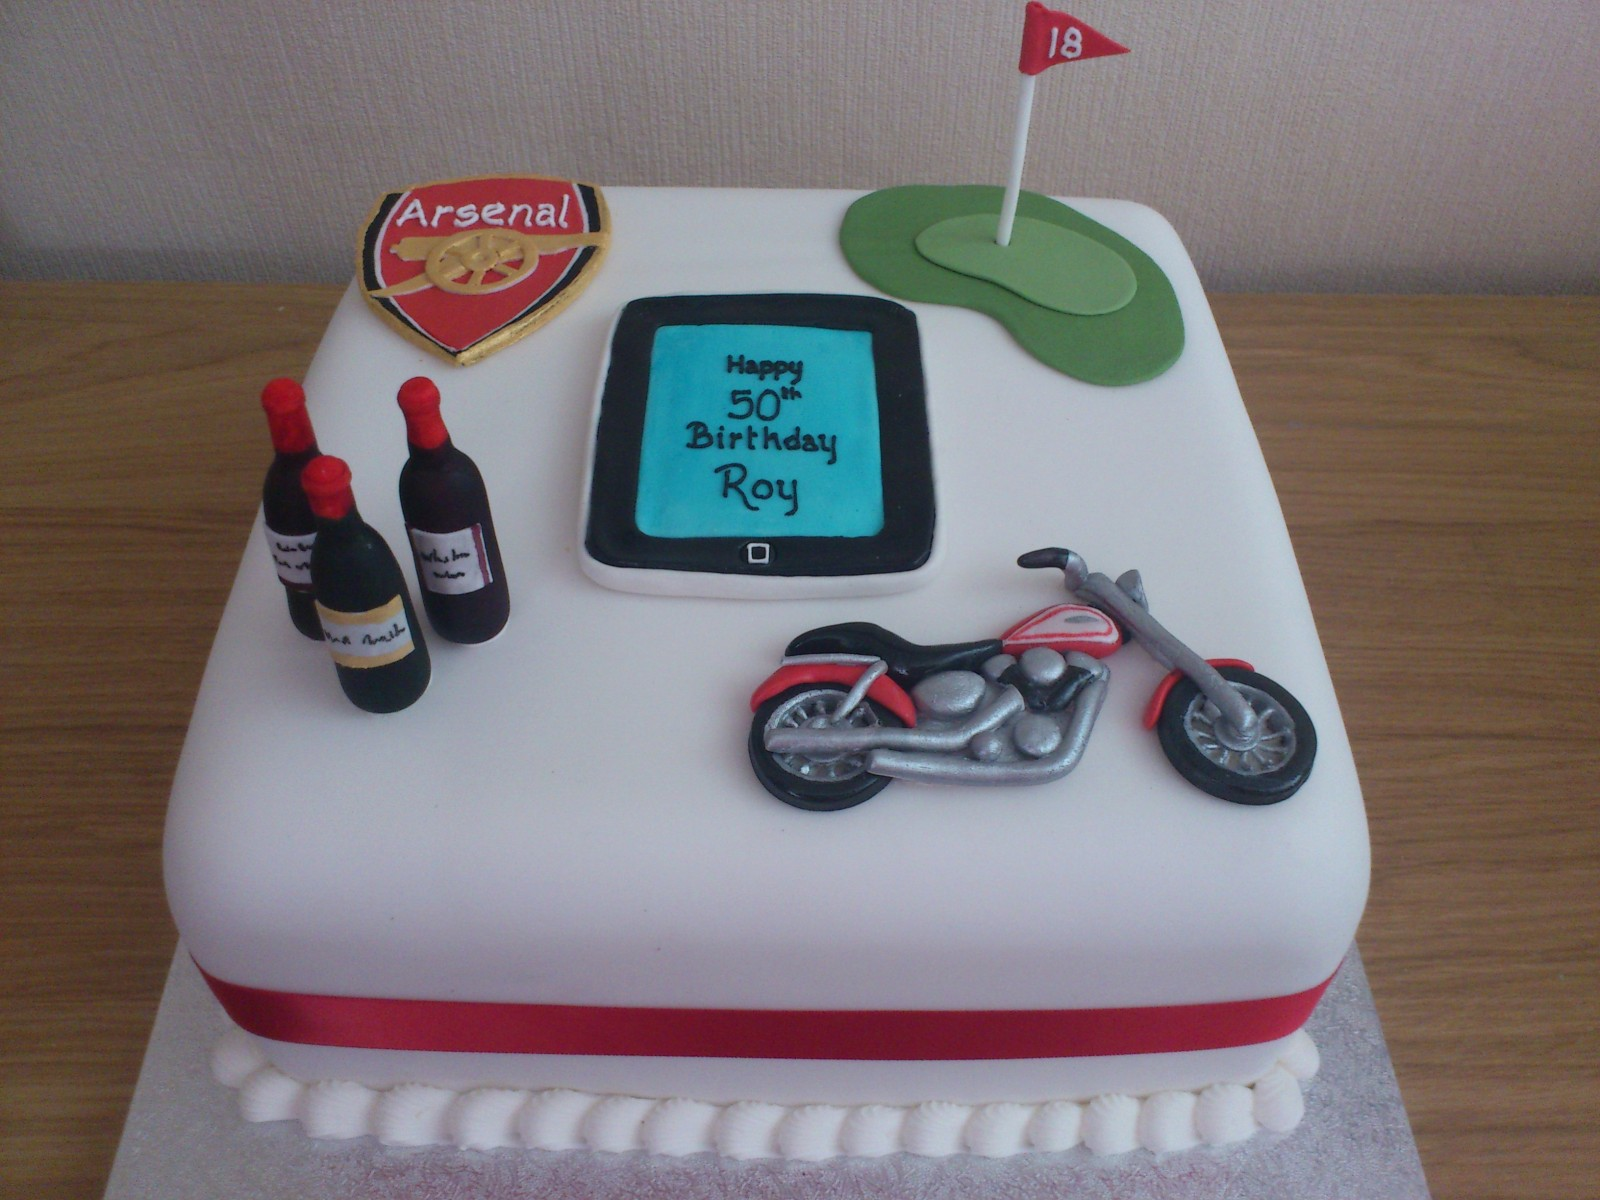 Golf Football Wine Motorcycle Techno Fan Birthday Cake Susies